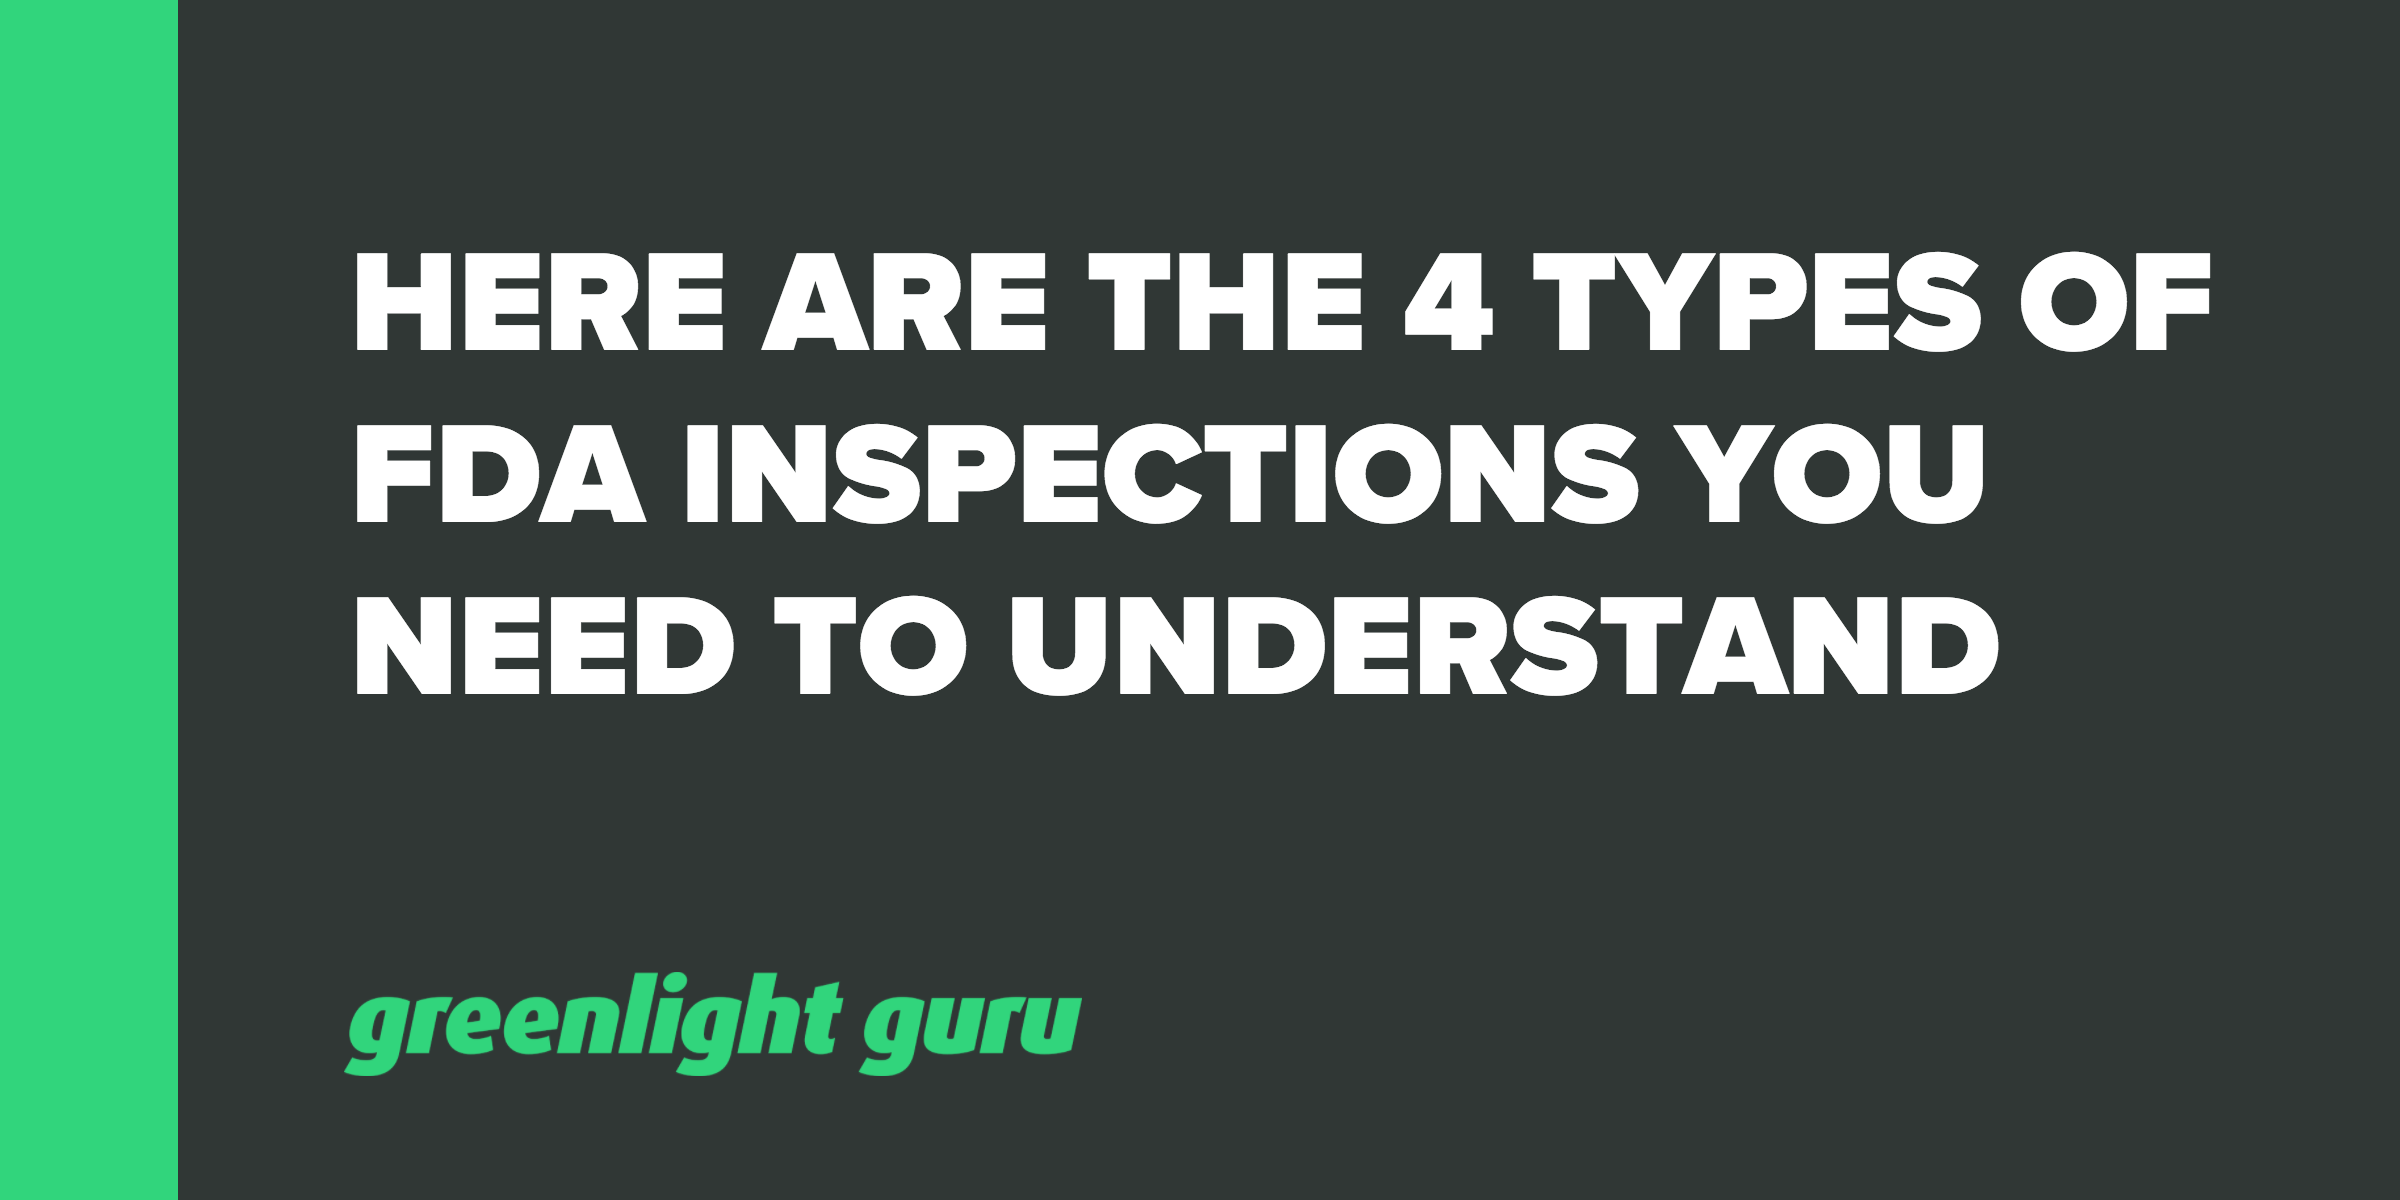 Here Are the 4 Types of FDA Inspections You Need to Understand - Featured Image